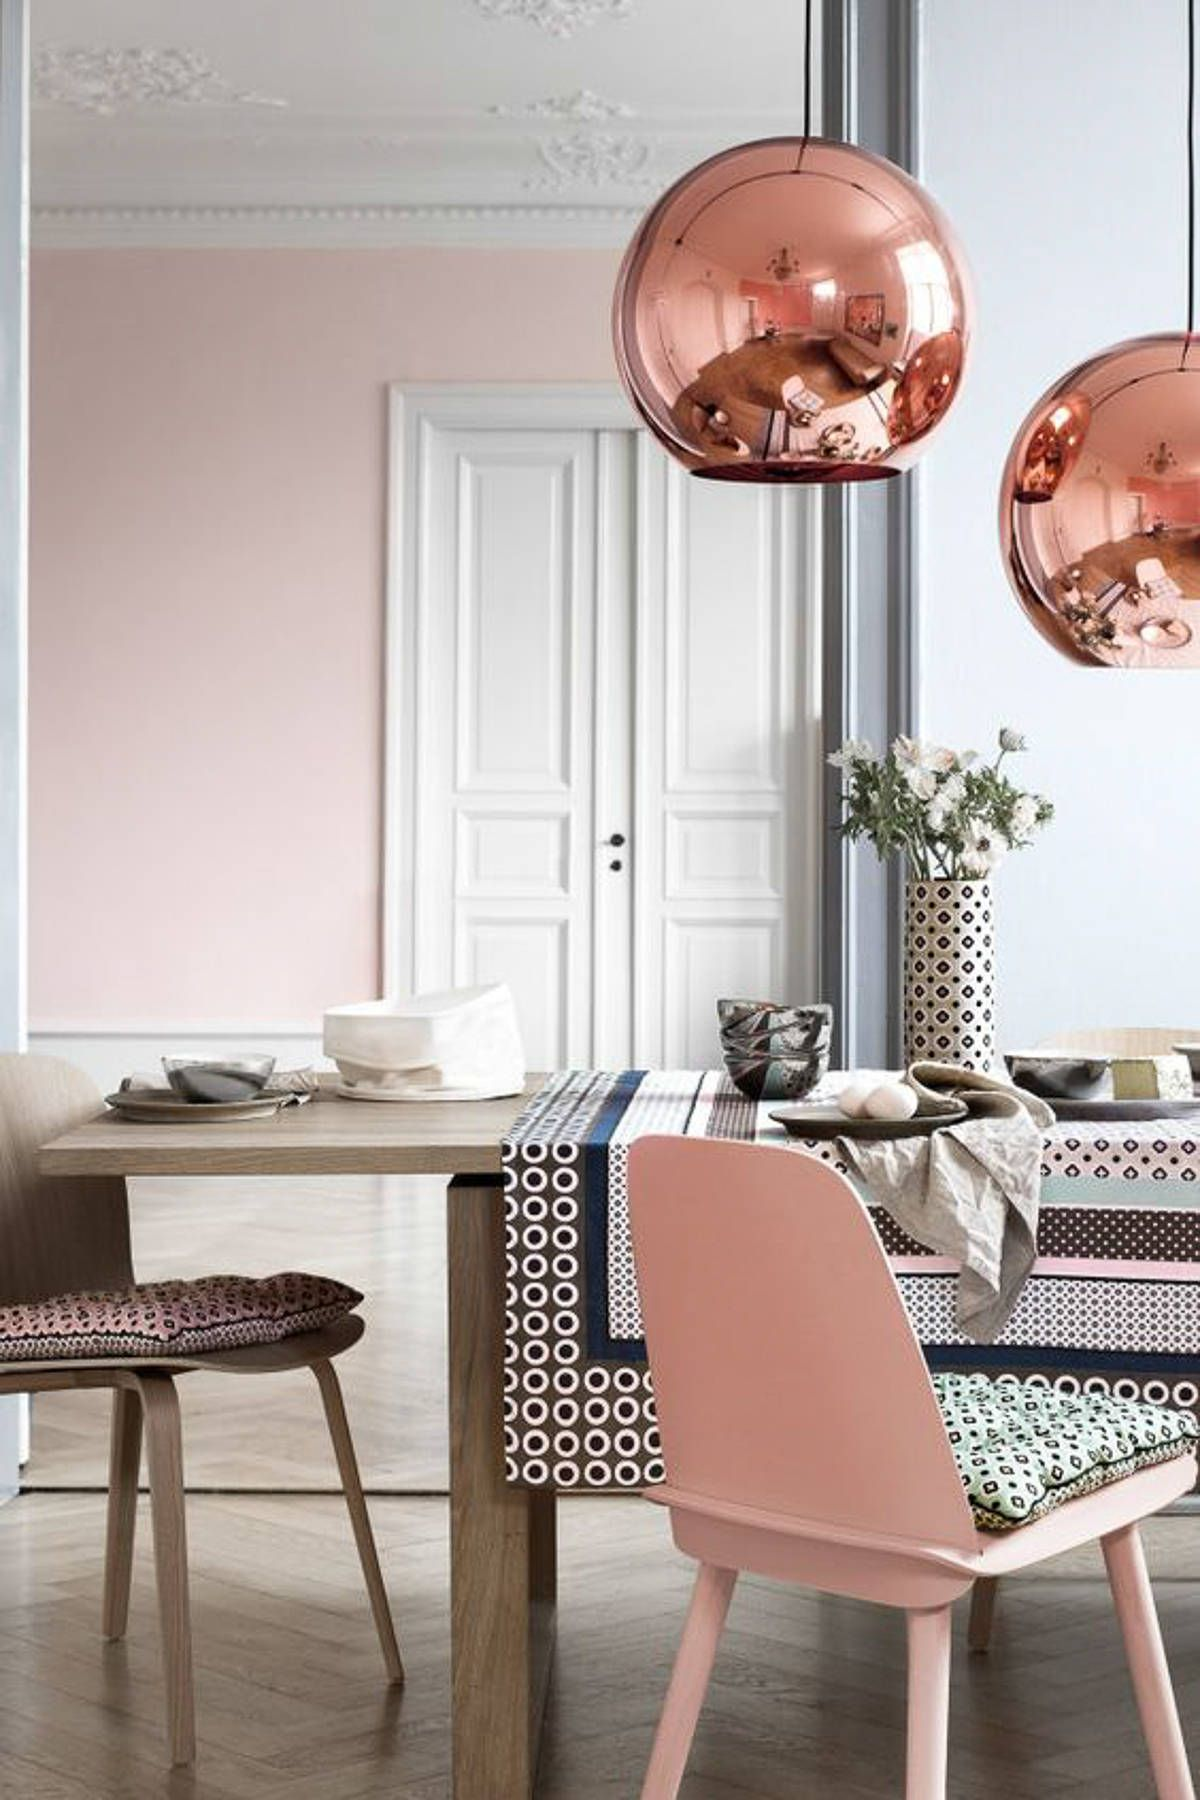 Home inspiration: decorating with blush pink | Colour ...